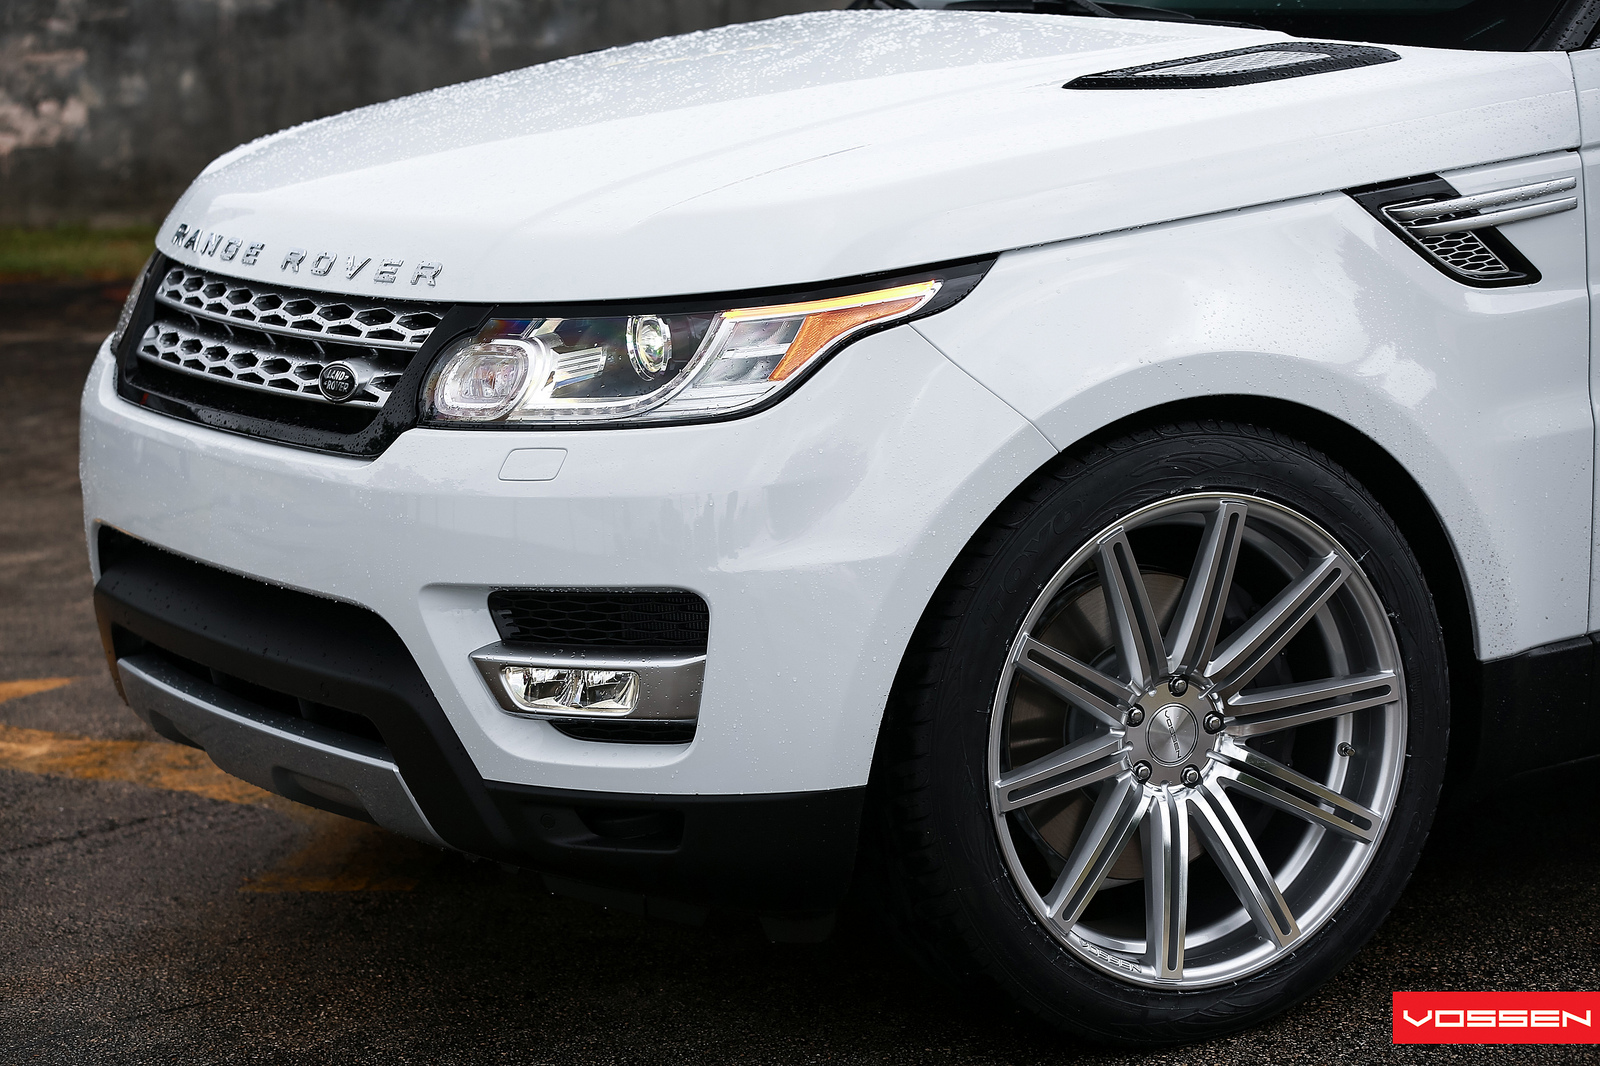 2014 Range Rover Sport Gets Vossen Wheels Autoevolution